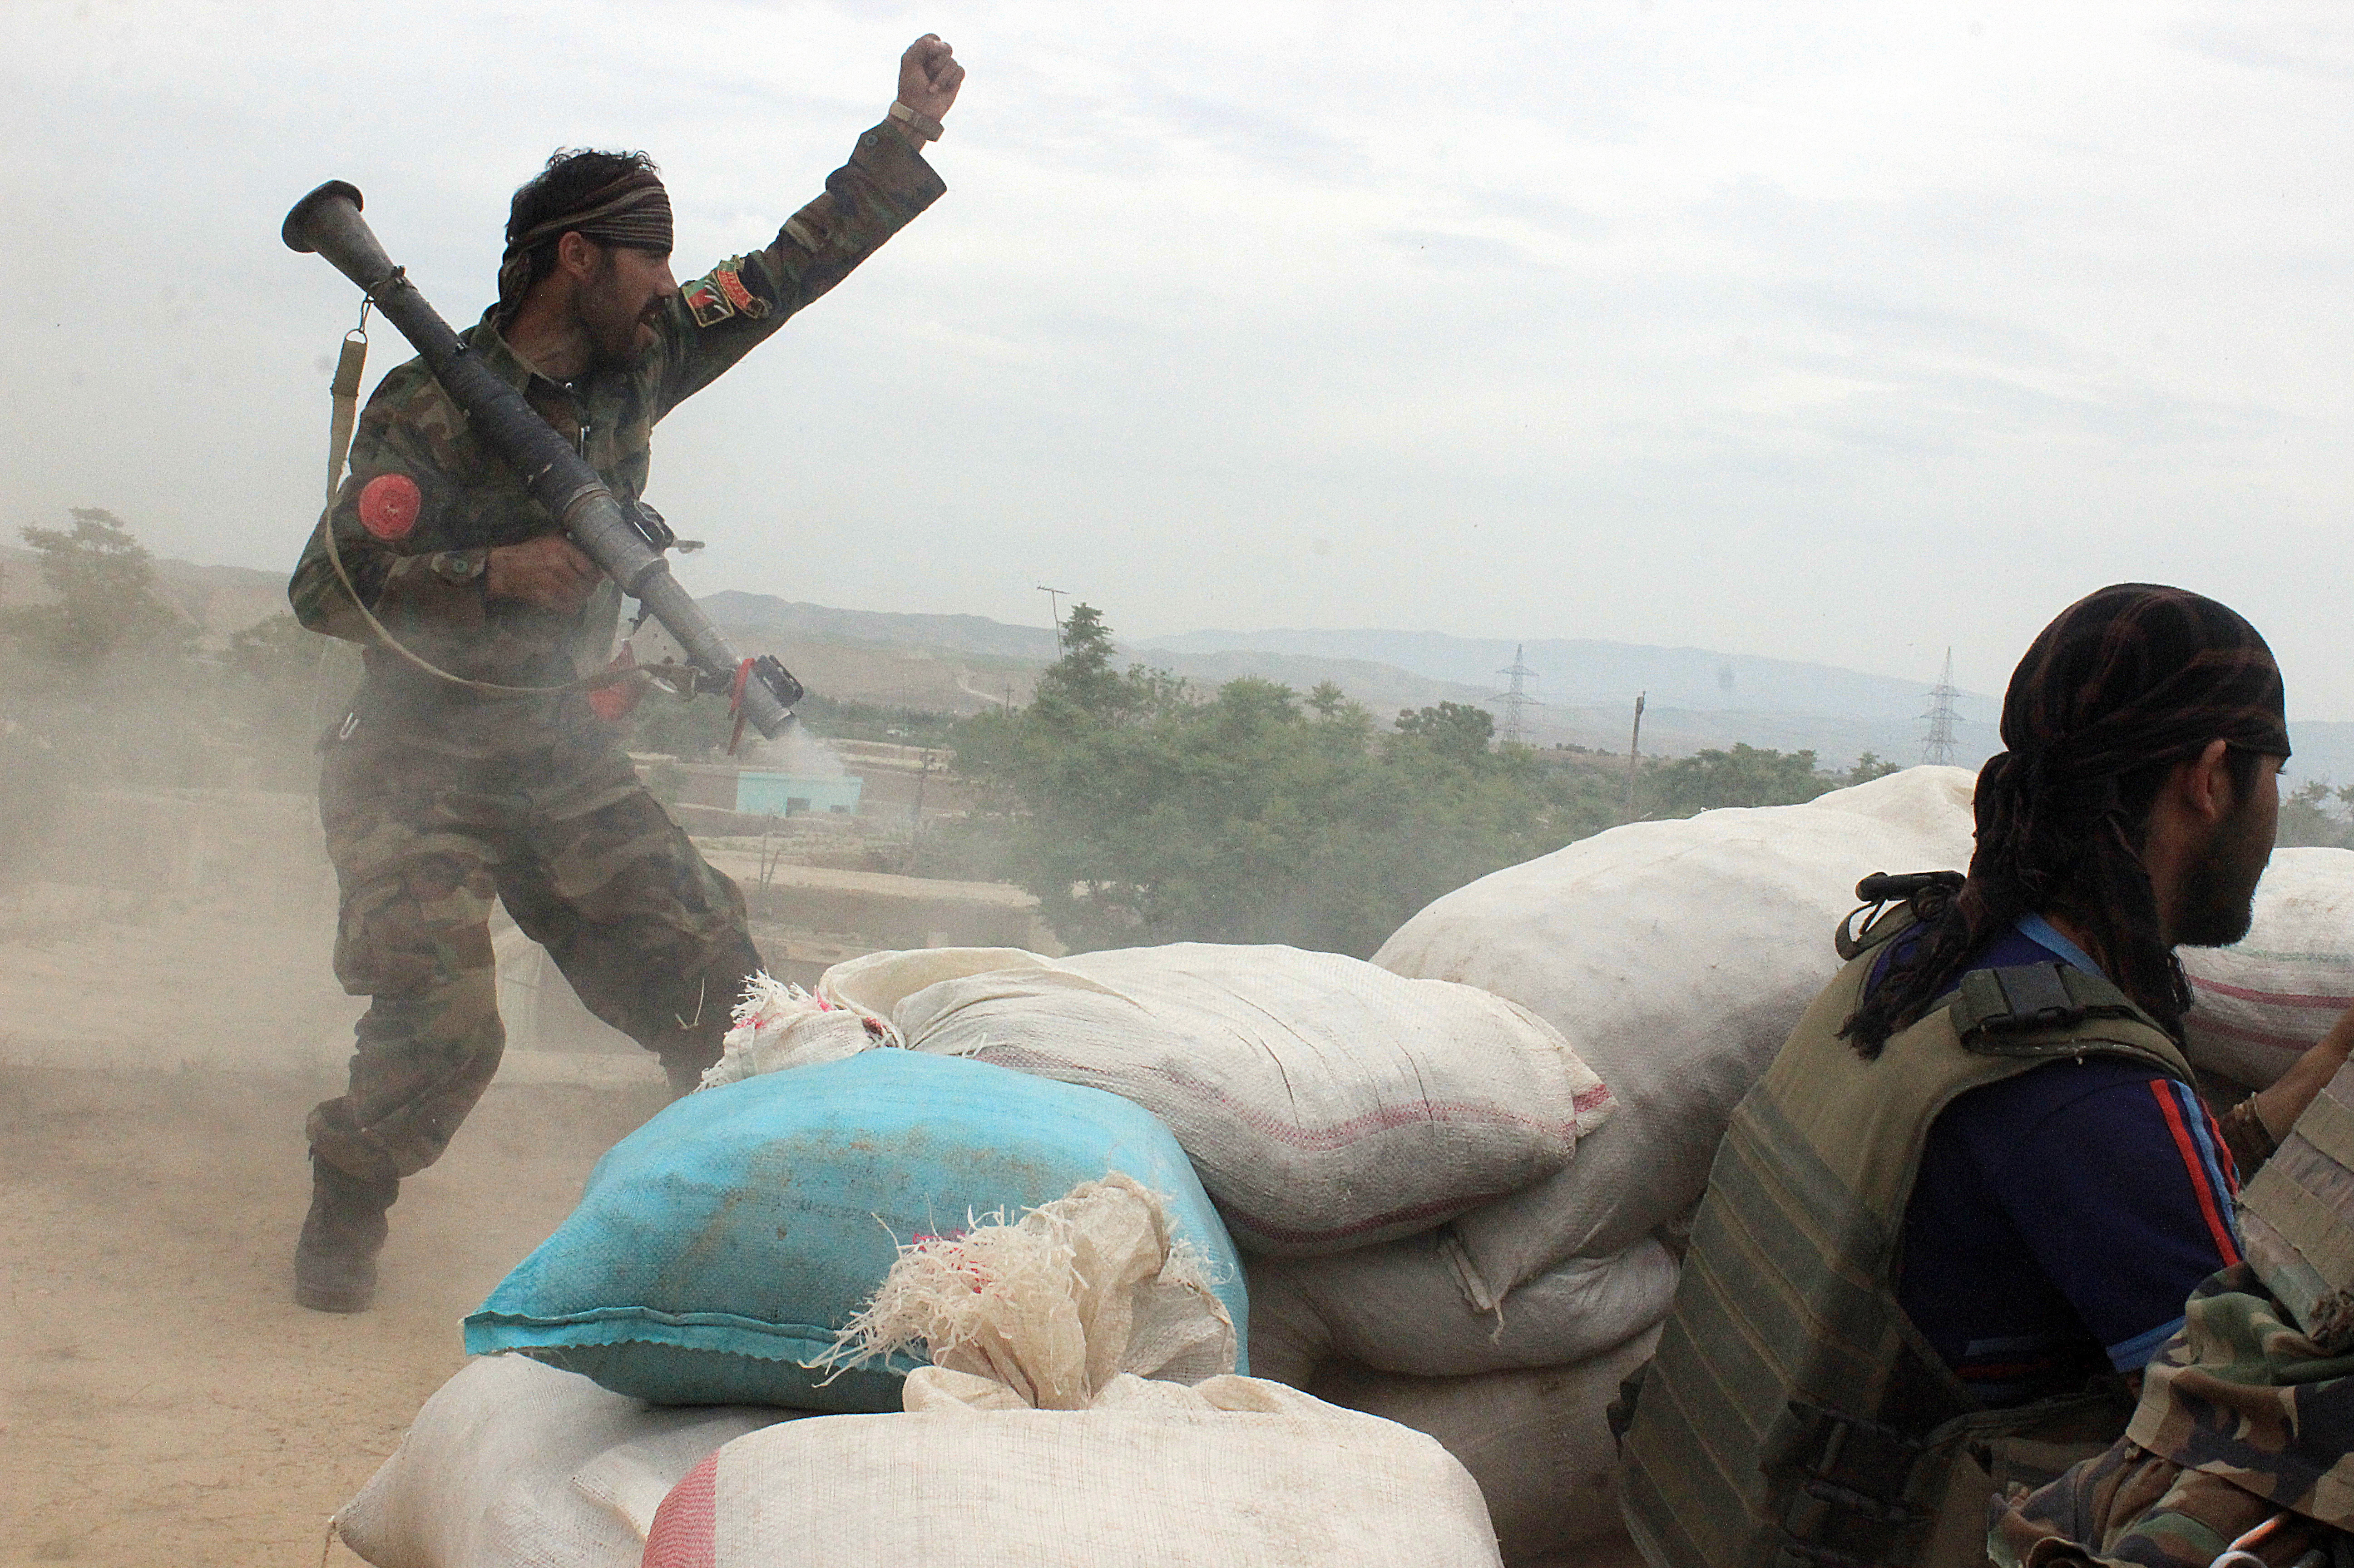 An Afghan National Army soldier, left, shouts against the Taliban, after firing a rocket towards Taliban positions, on the outskirts of Kunduz, northern Afghanistan (File)